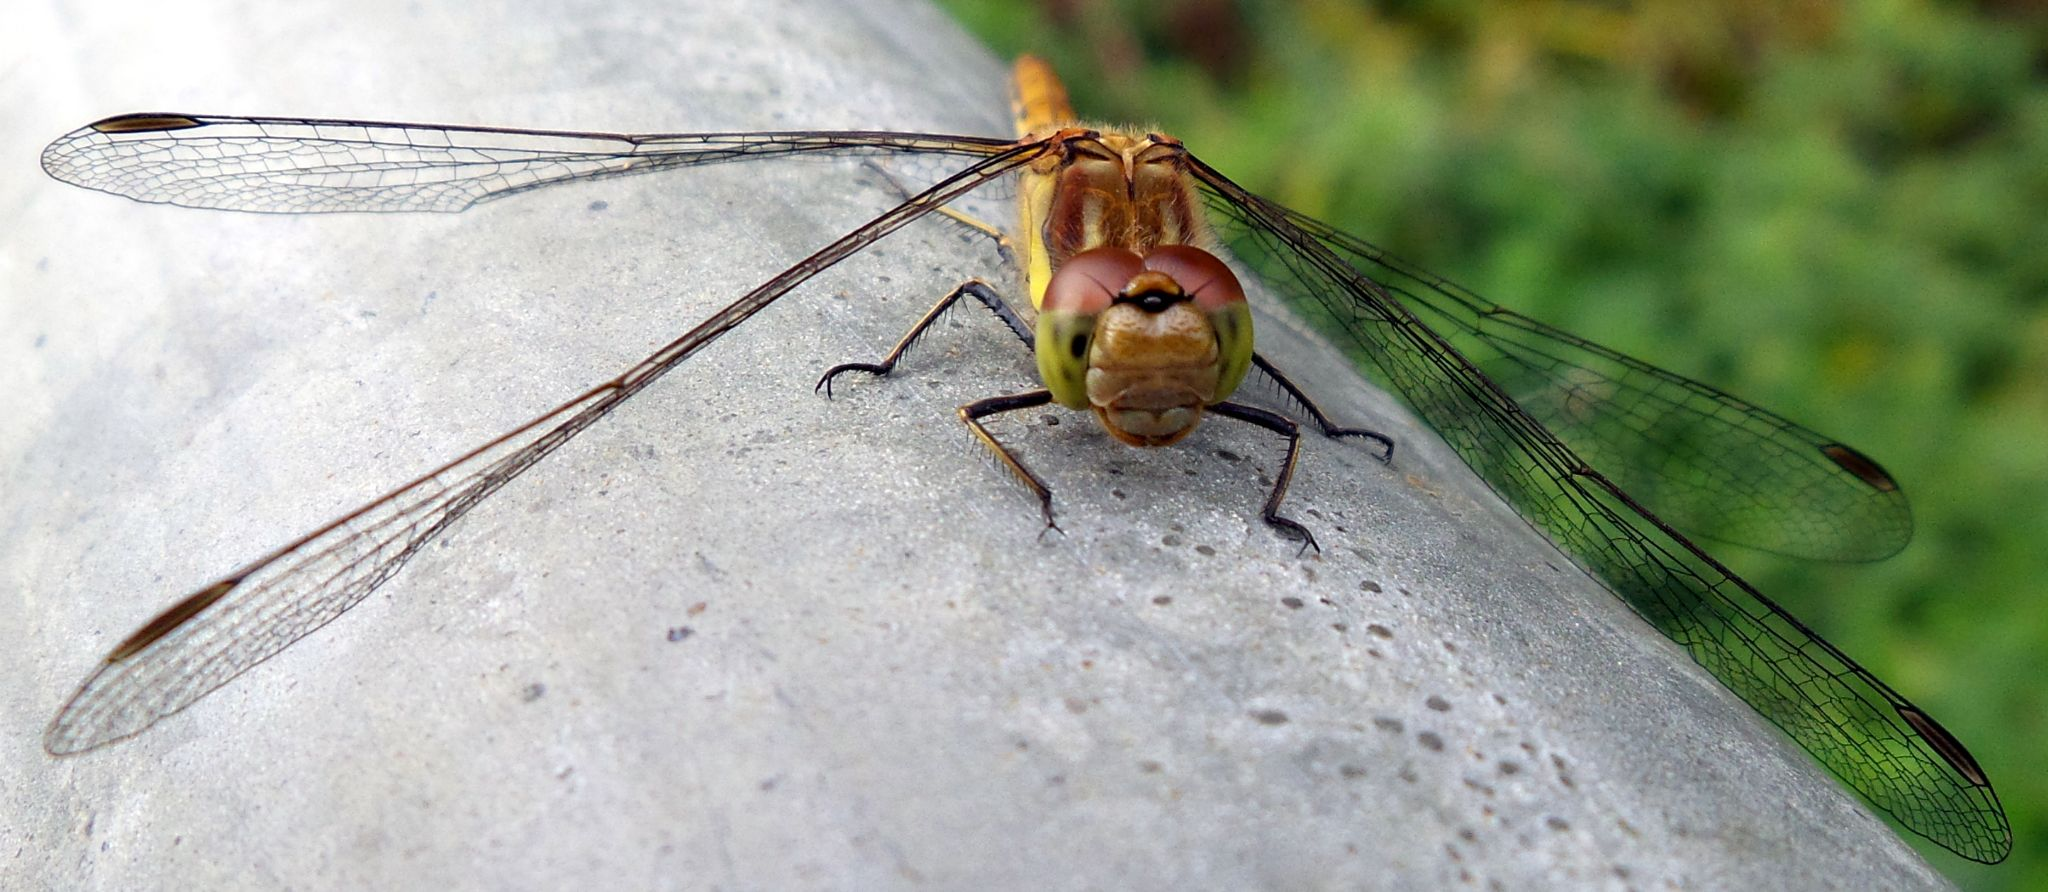 Dragonfly by Tracy Carr-Harding